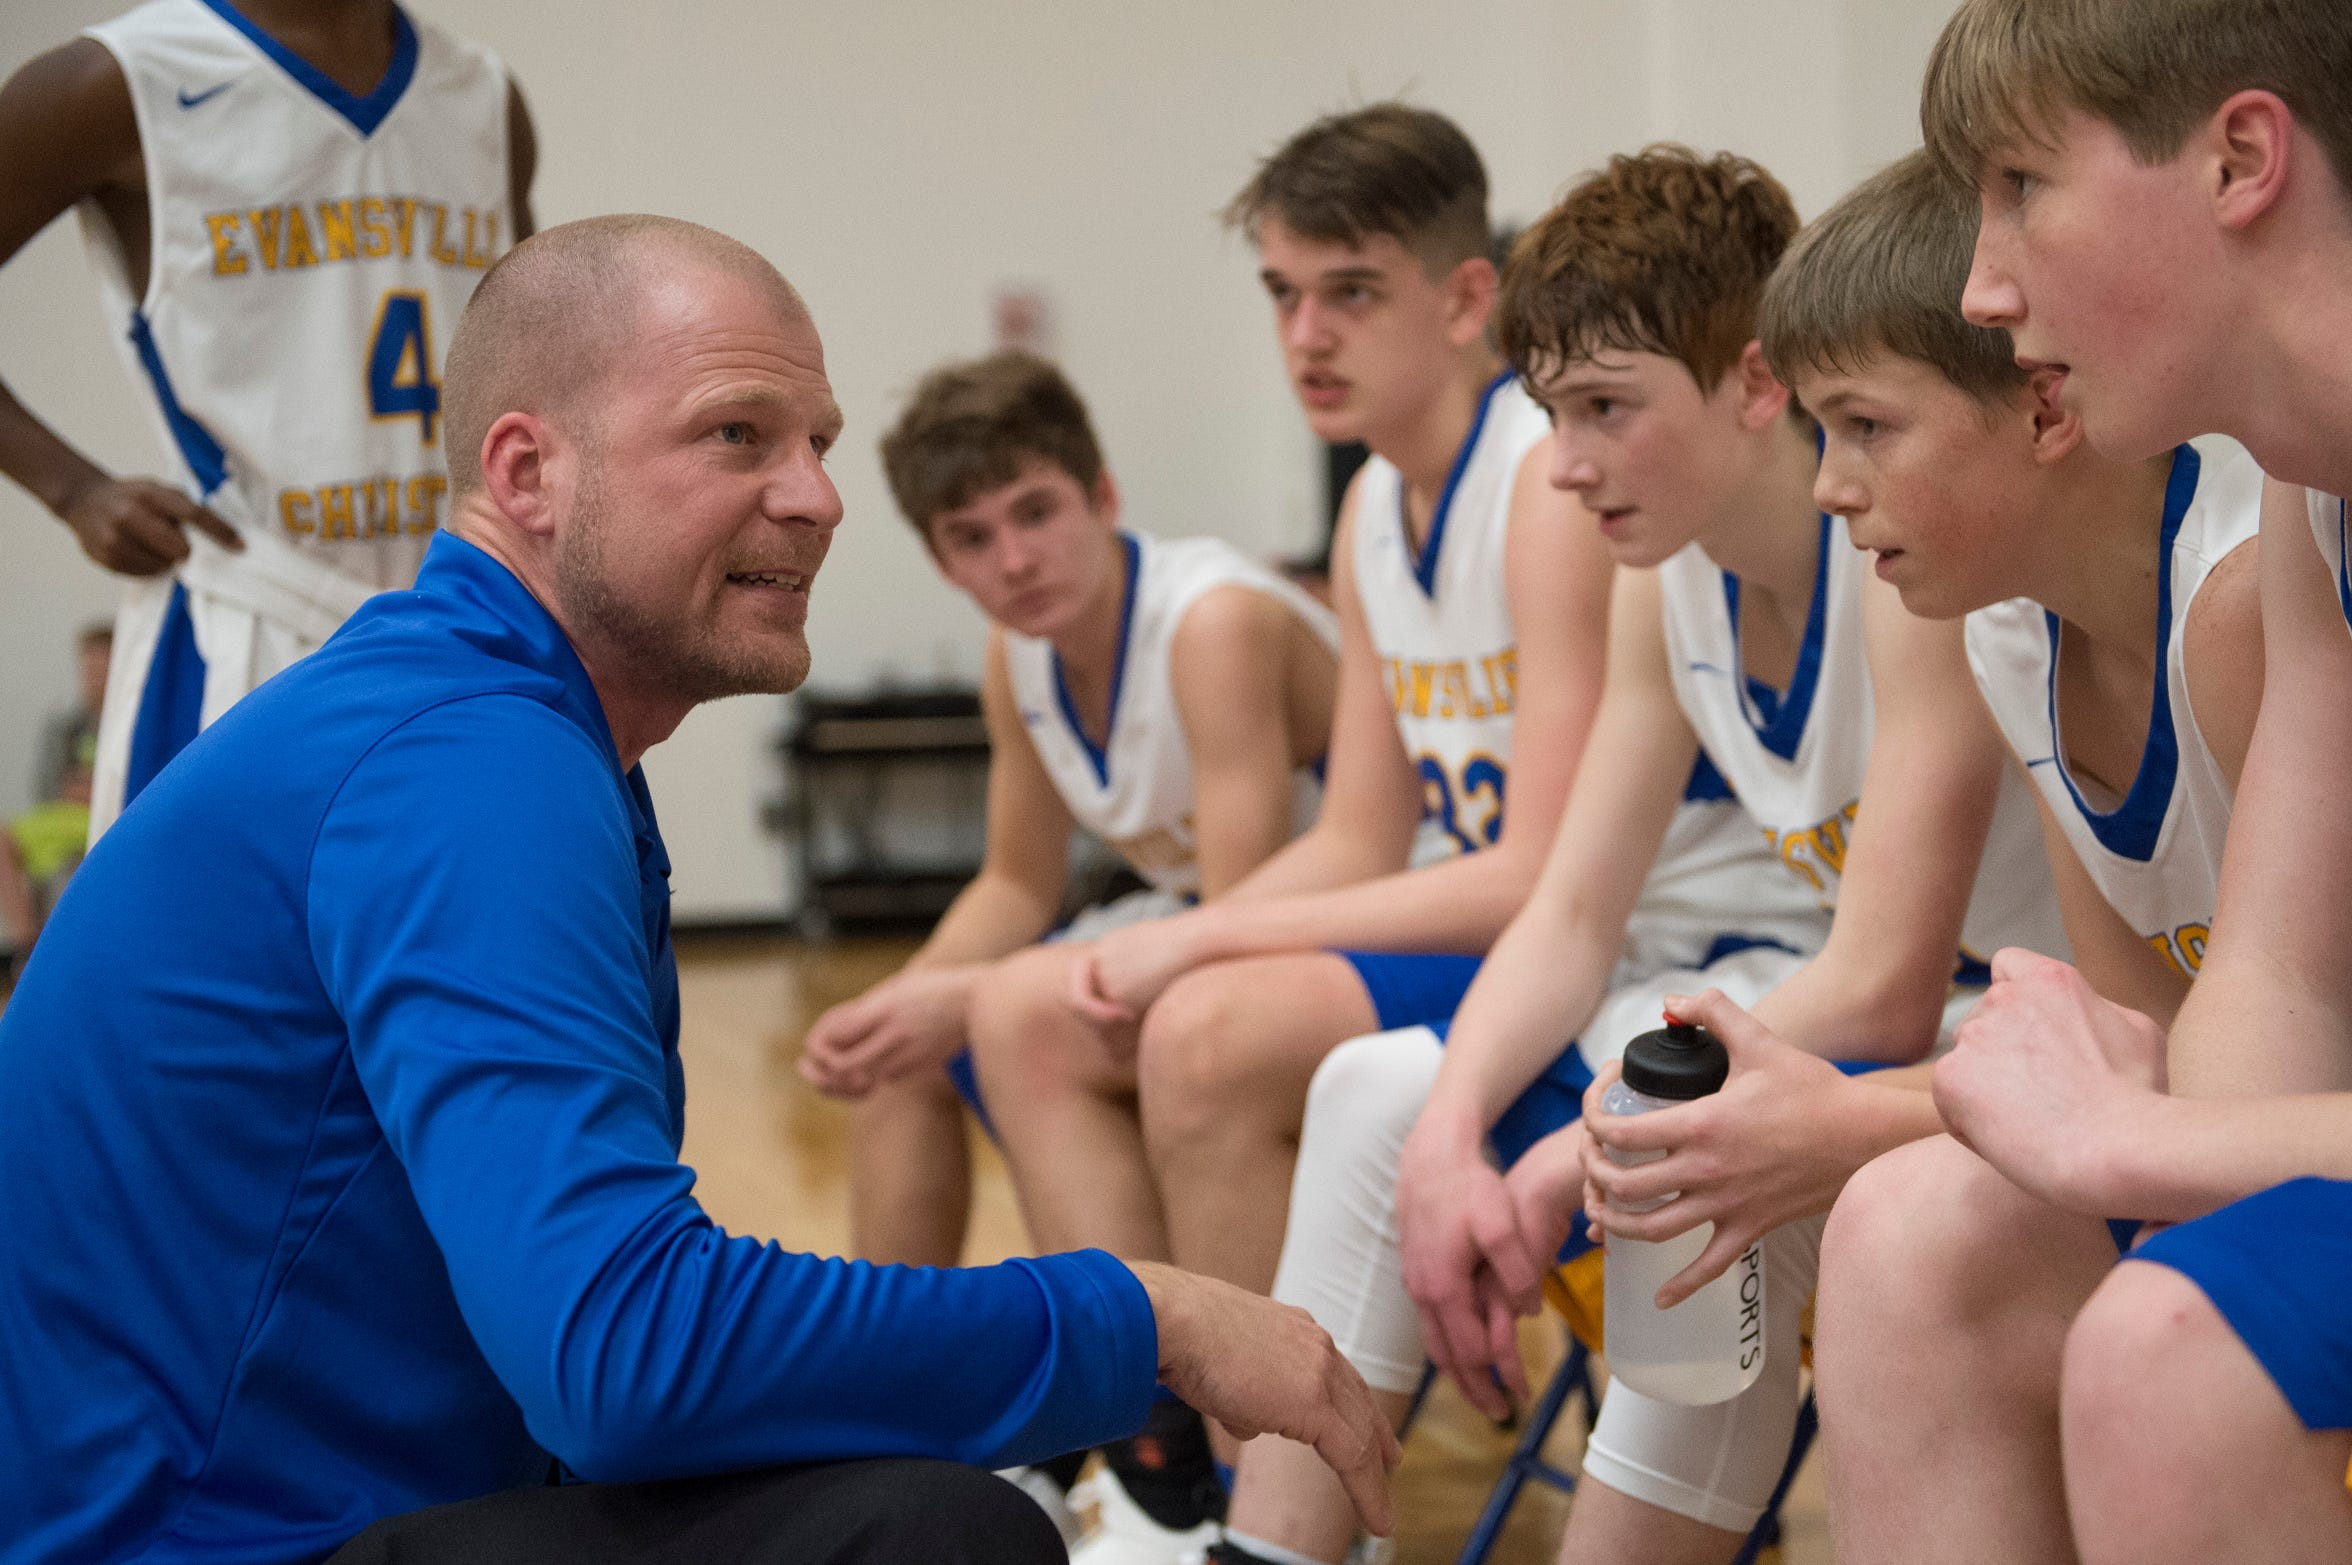 Evansville Christian's Head Coach Aaron Thompson excites his team during a timeout in the schools first-ever home game against the Cannelton Bulldogs Friday, Dec. 14, 2018.